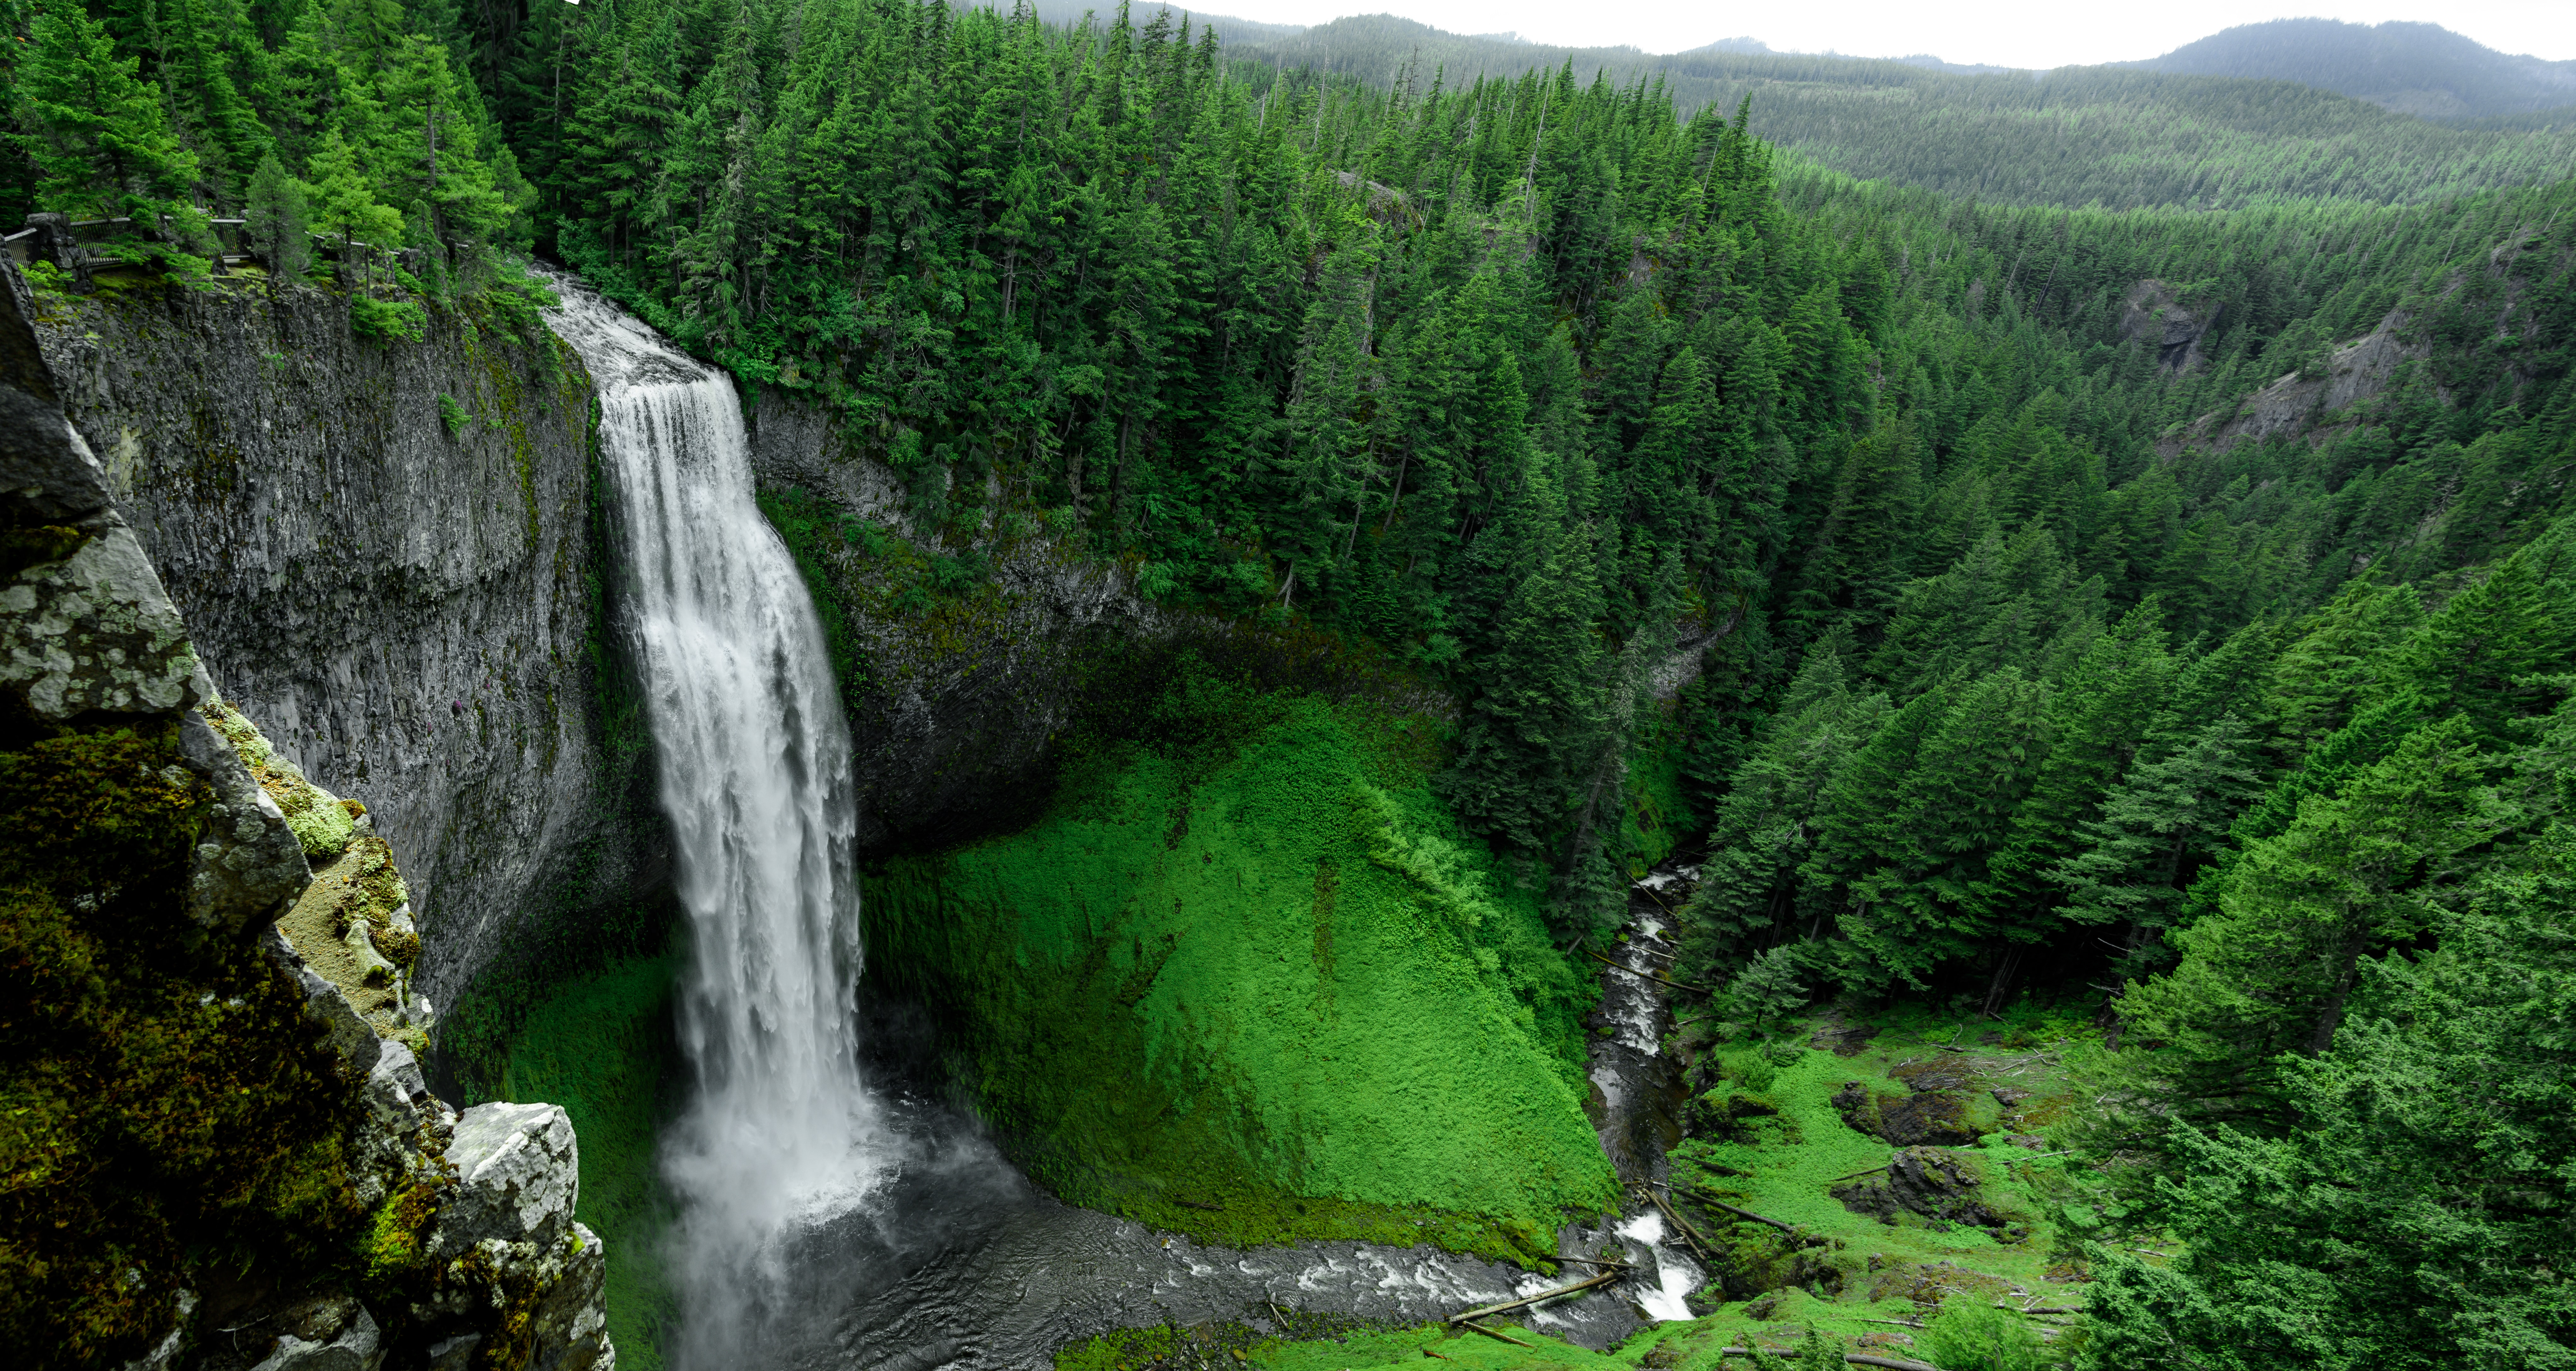 A waterfall tumbling down into a ravine in a green forest